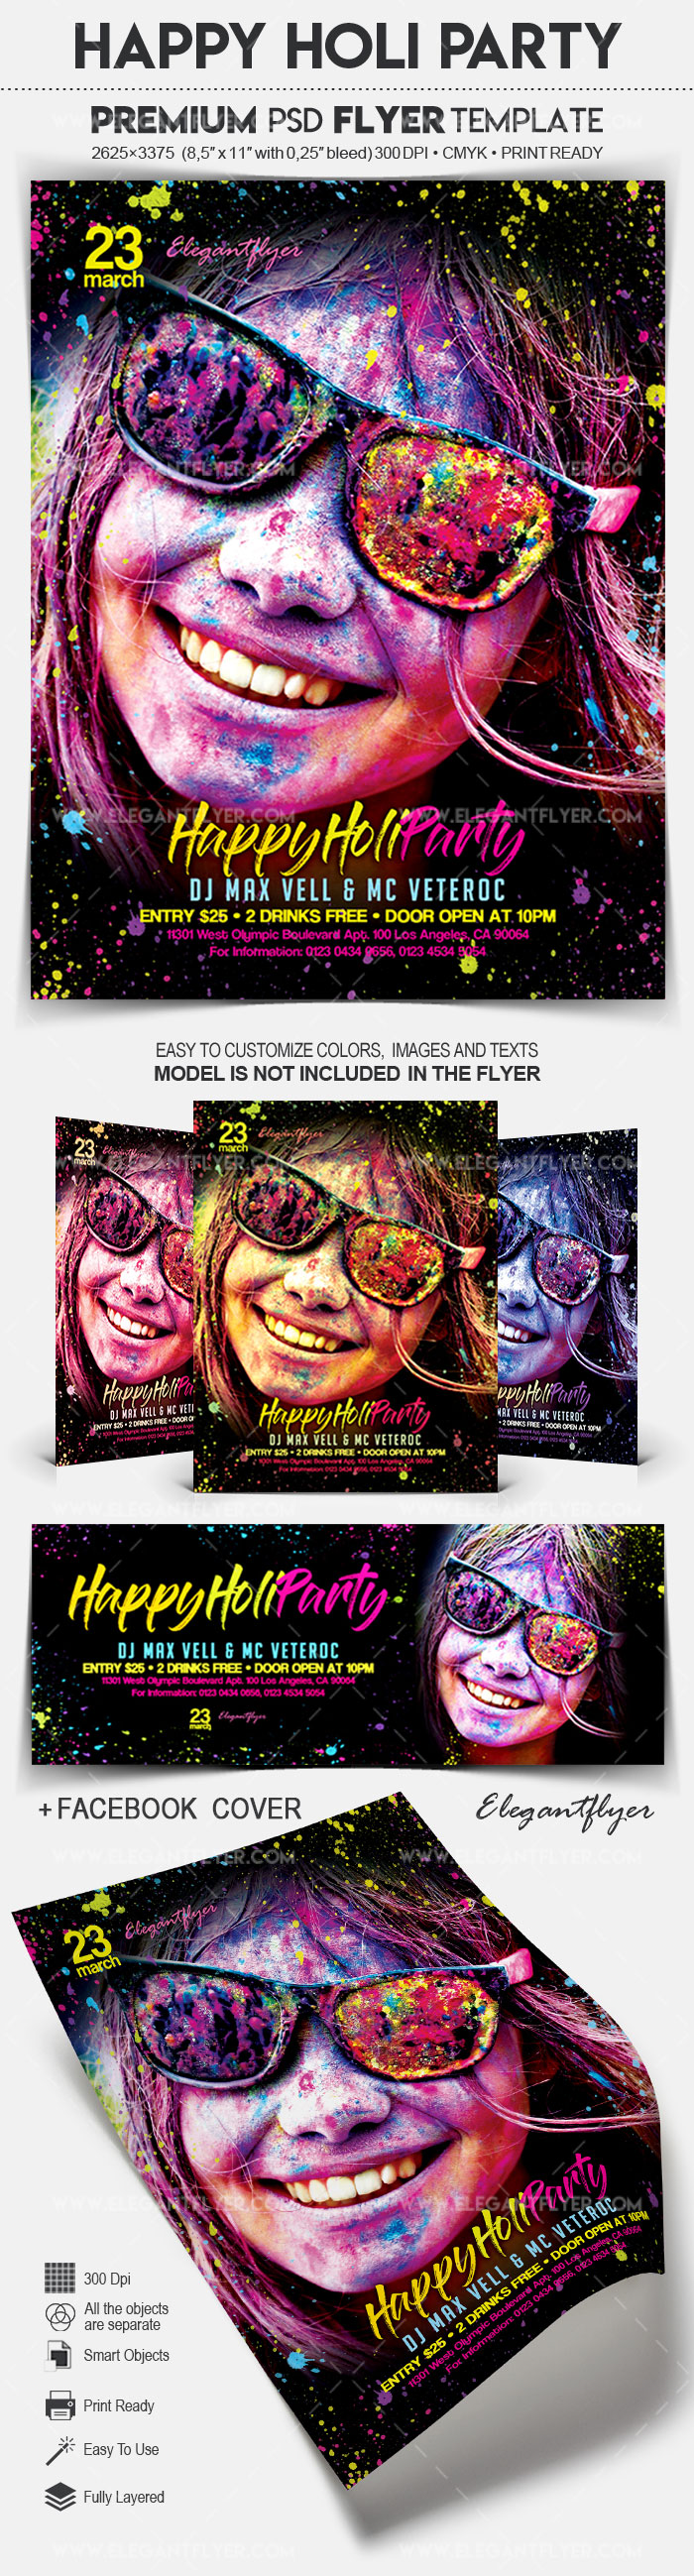 Happy Holi Party – Flyer PSD Template